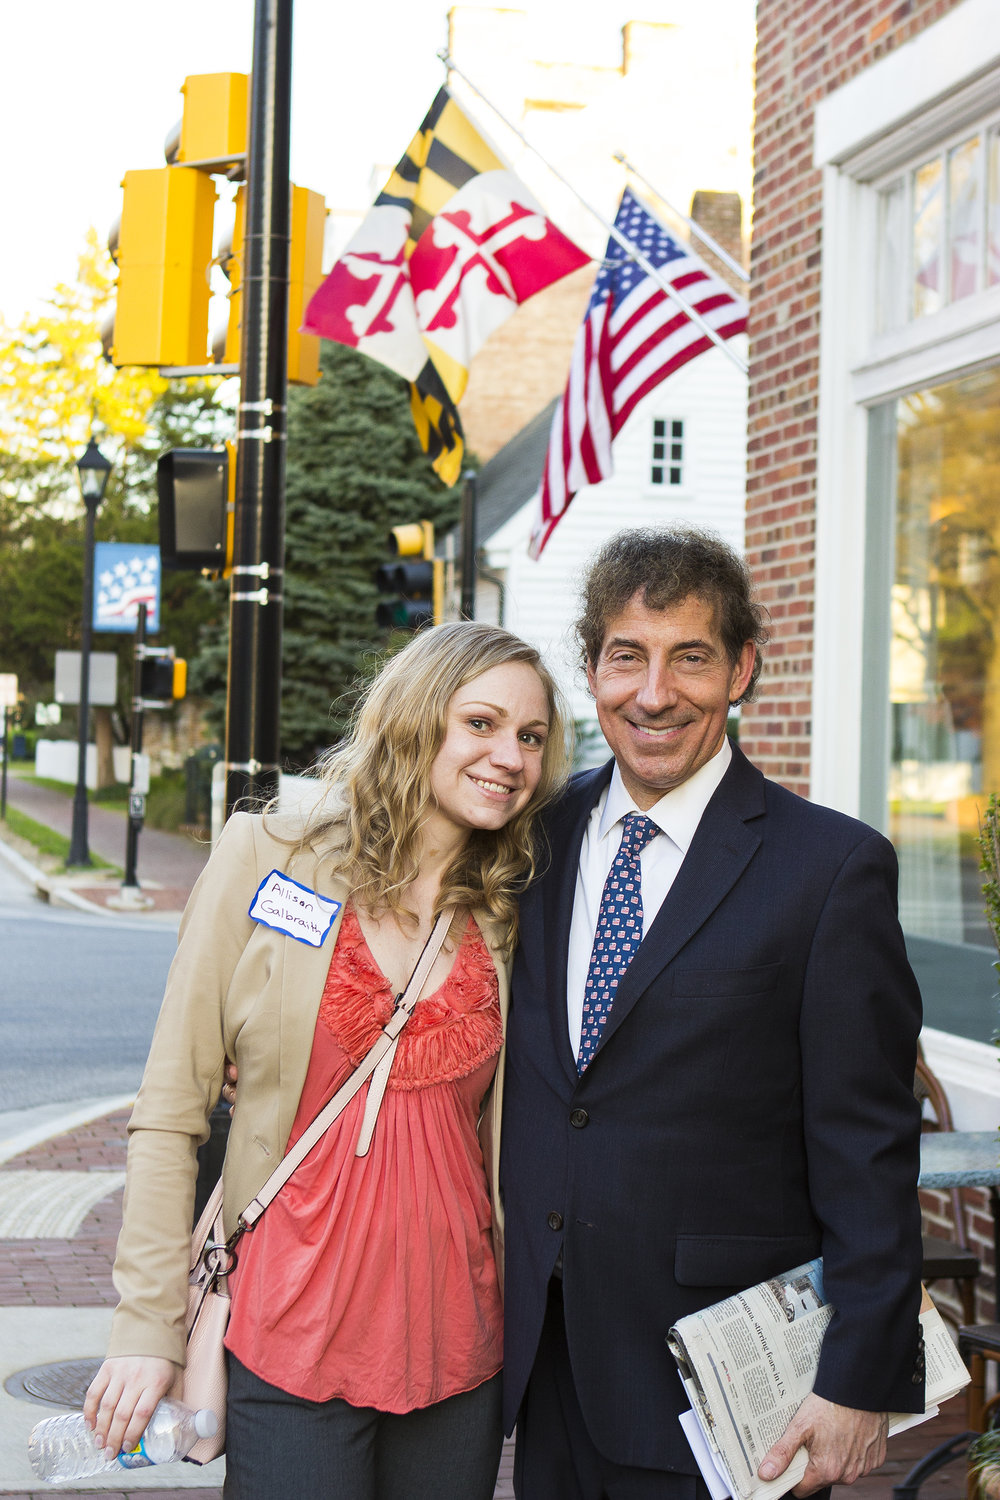 Allison with Rep. Jamie Raskin